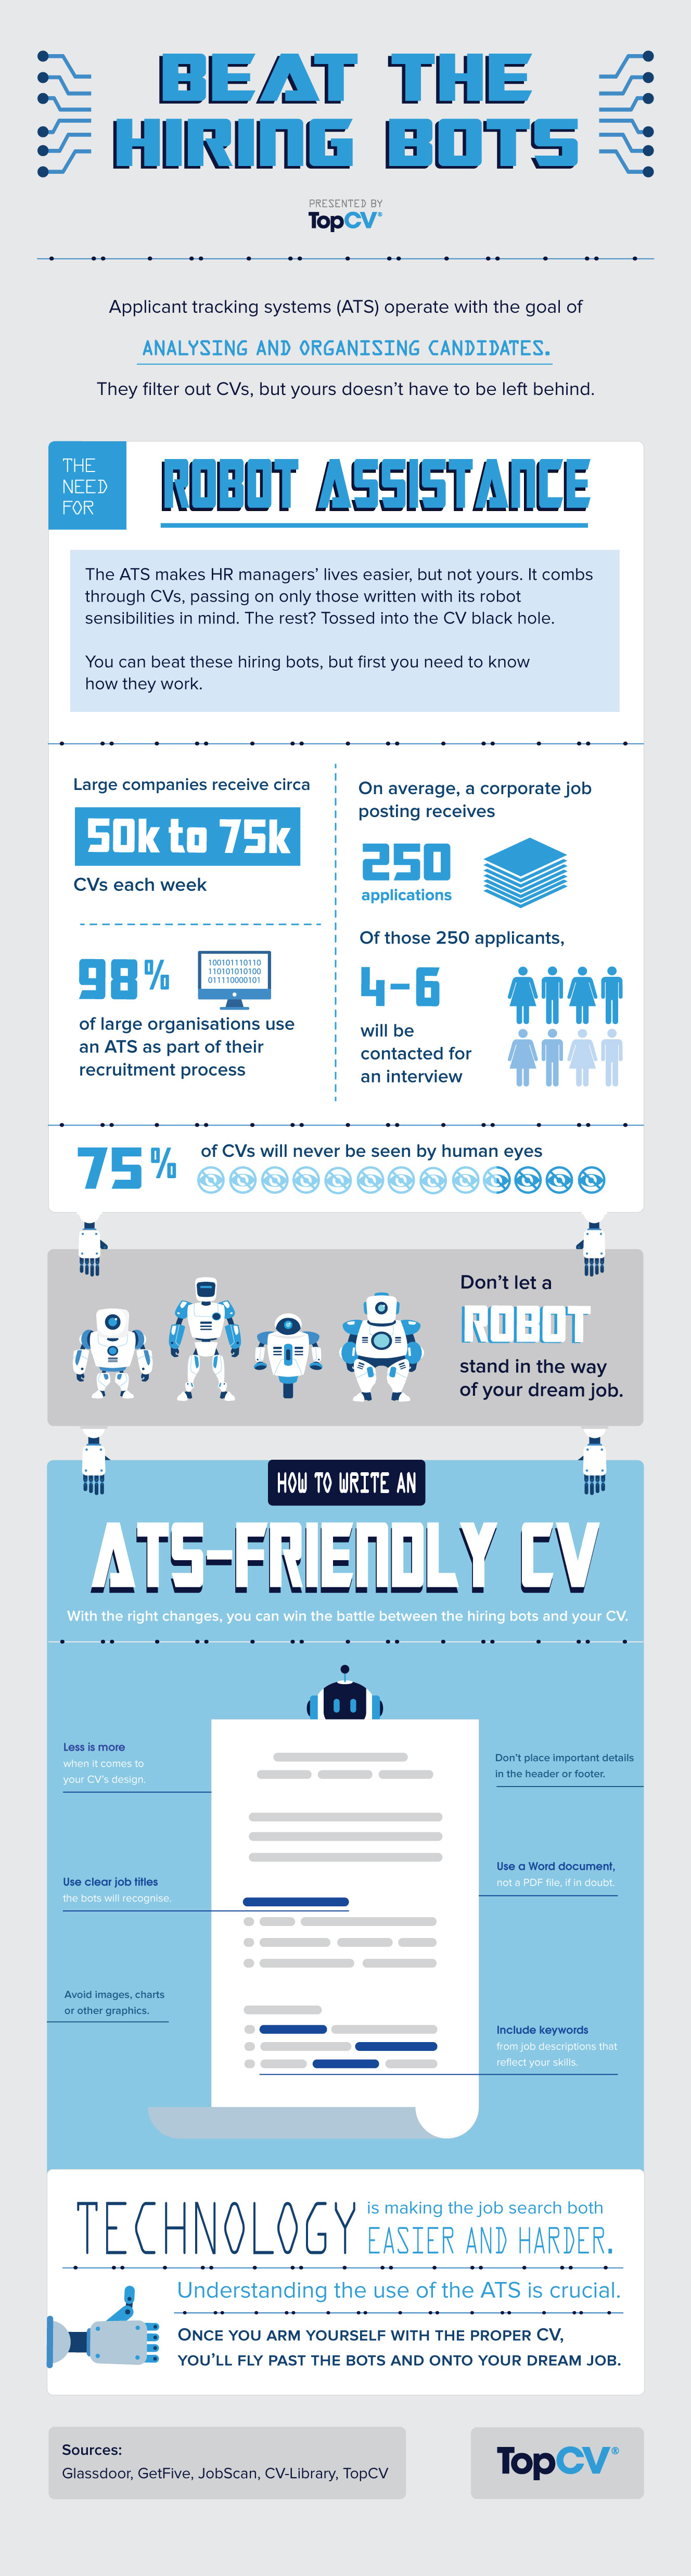 Infographic_How_to_beat_ATS_hiring_bots_CV